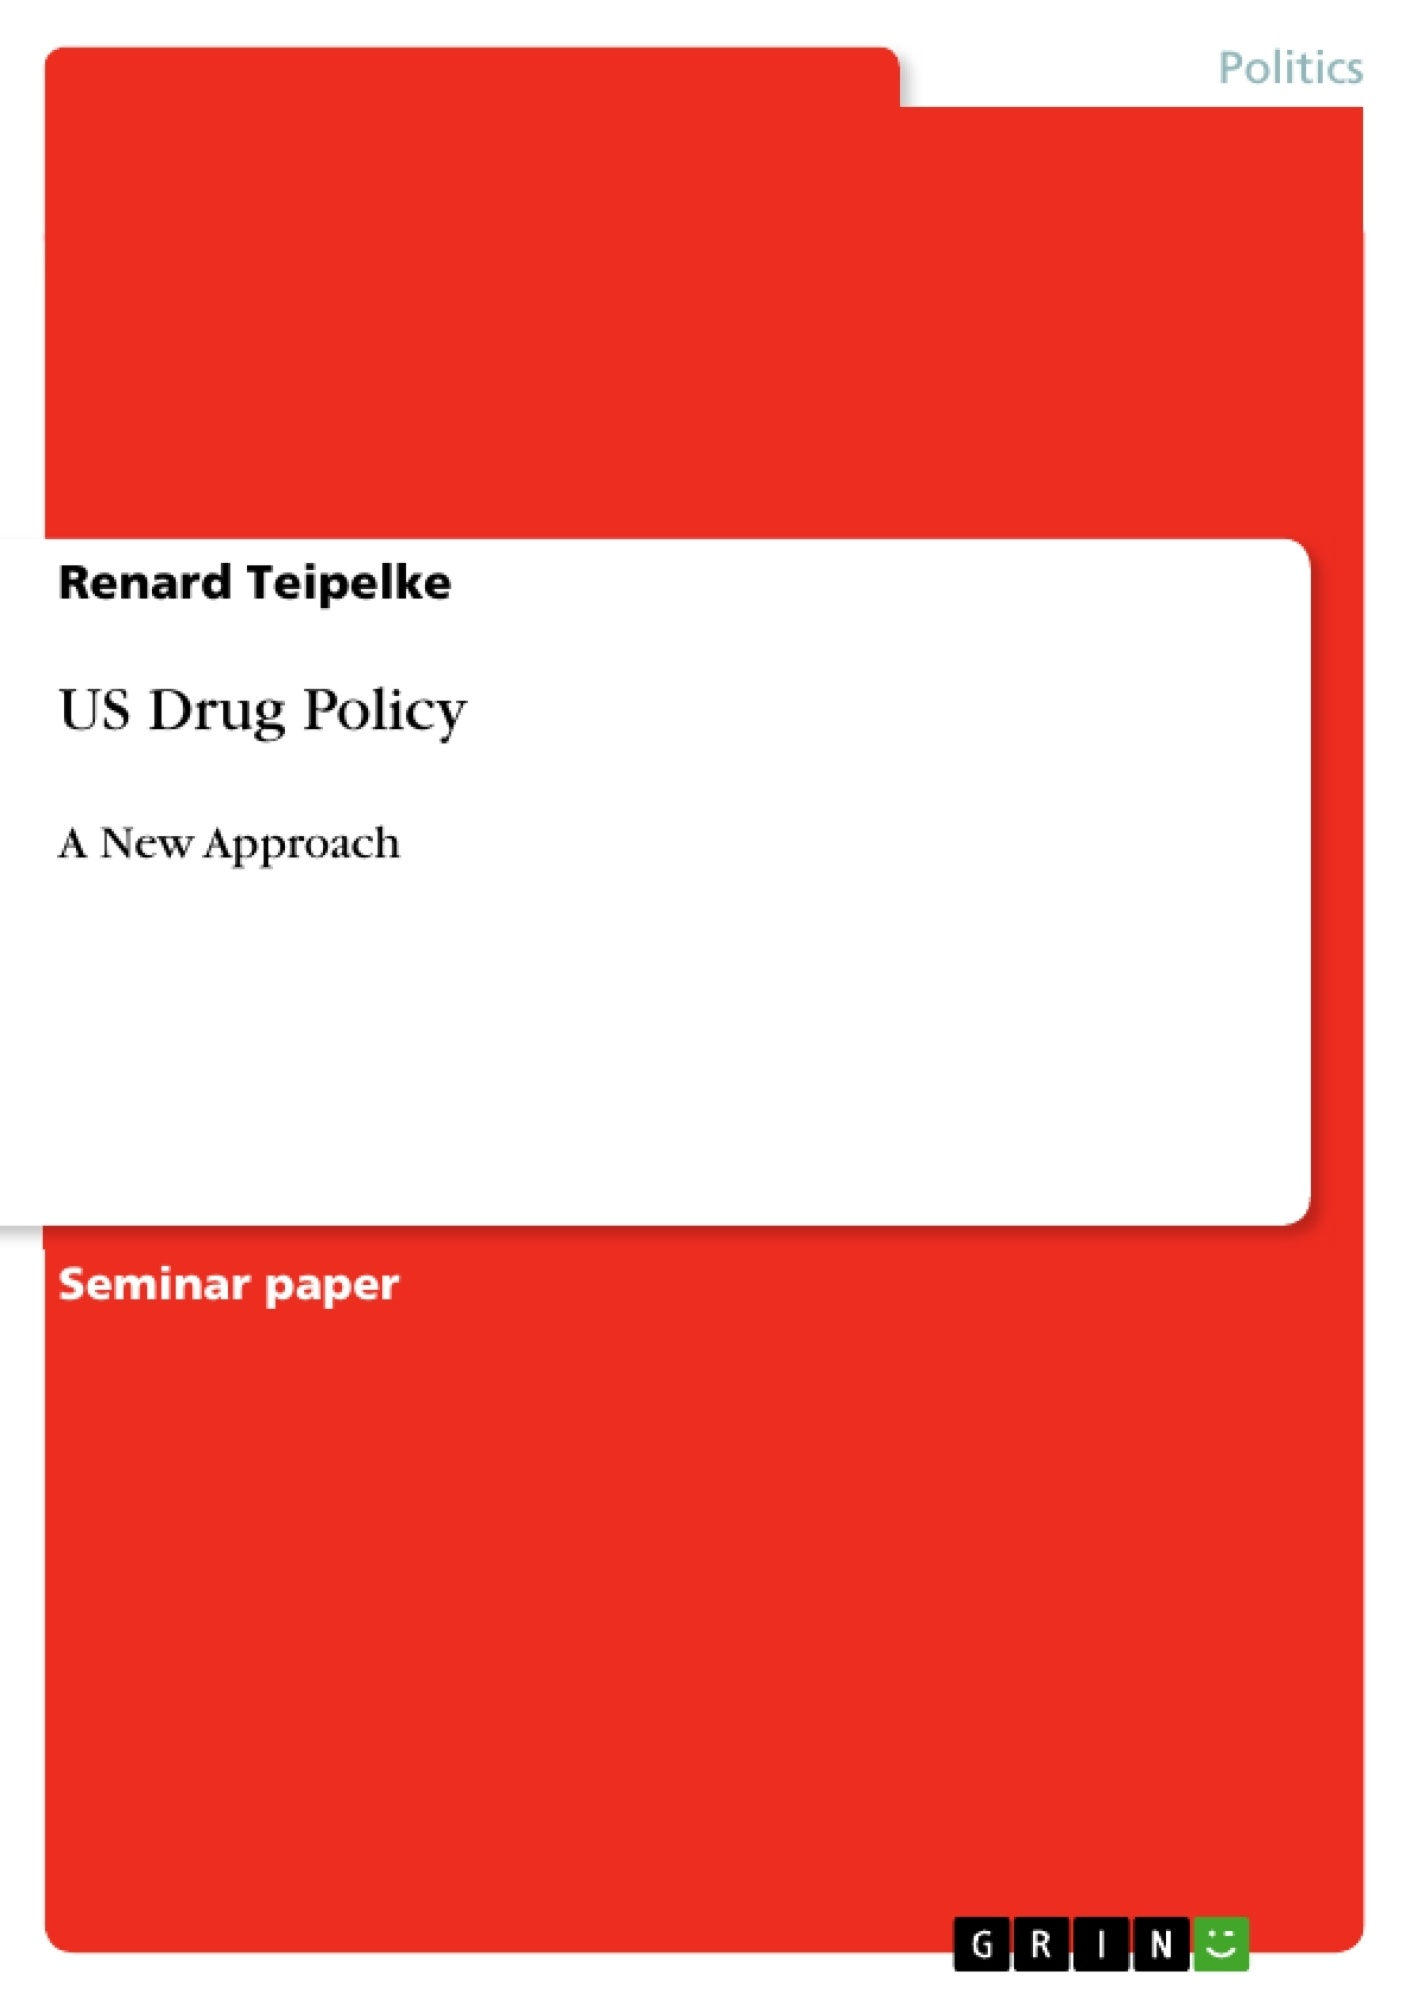 Title: US Drug Policy